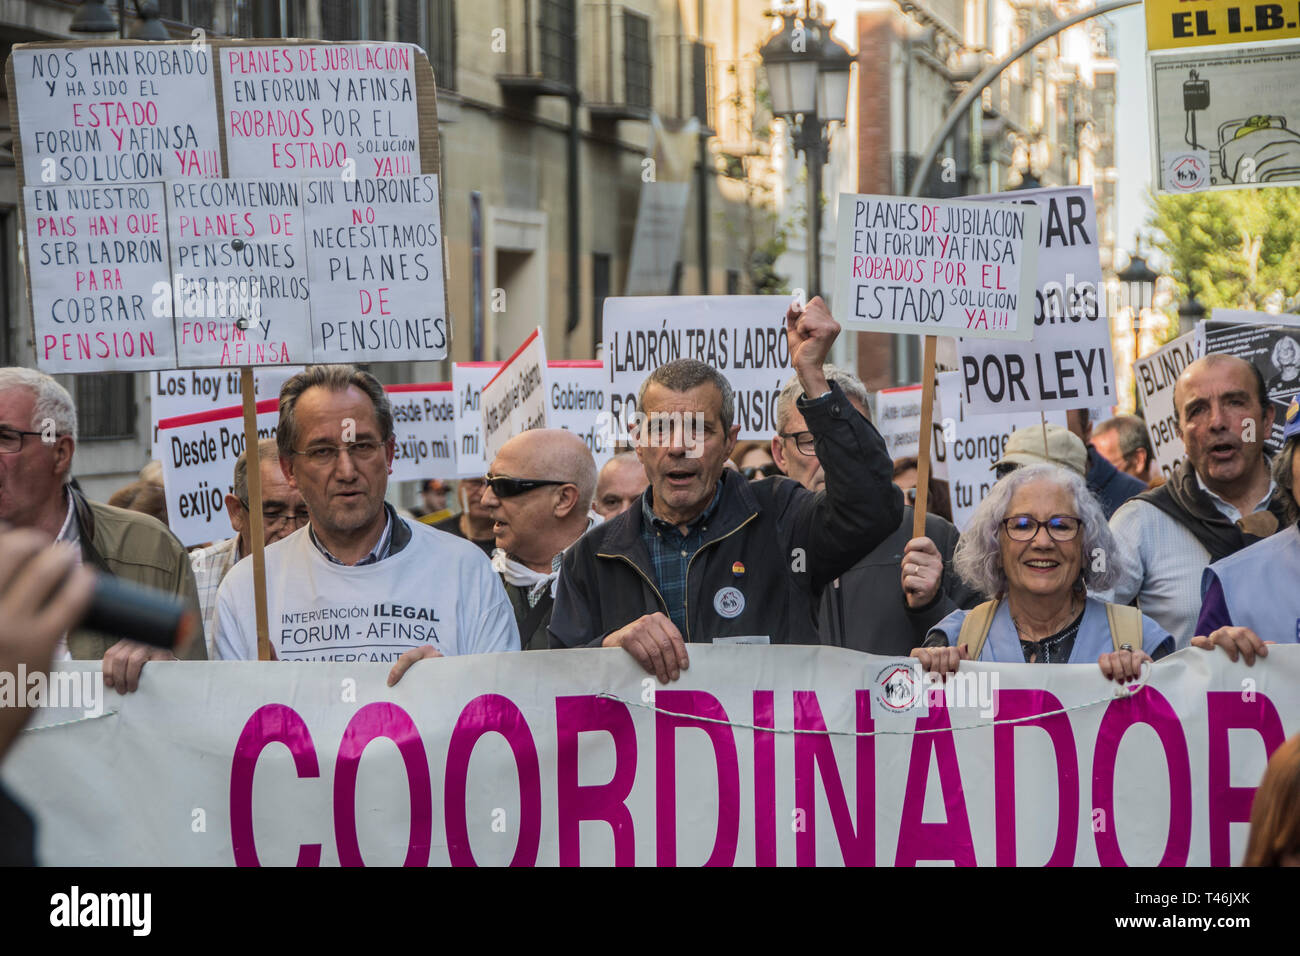 Protesters are seen holding placards and a banner while chanting slogans during the demonstration. Demonstration to defend the systemic public pension in Madrid by the CCOO coordination of pensioners that calls on the Government to ensure the presentation in this term of an initiative to repeal the pension reform of 2013, which must be legally validated in the face of elections this month of April 2019, within the framework of broad agreements in the political and social sphere. This initiative is a prior agreement of the social partners (trade unions and employers), culminating the process of Stock Photo